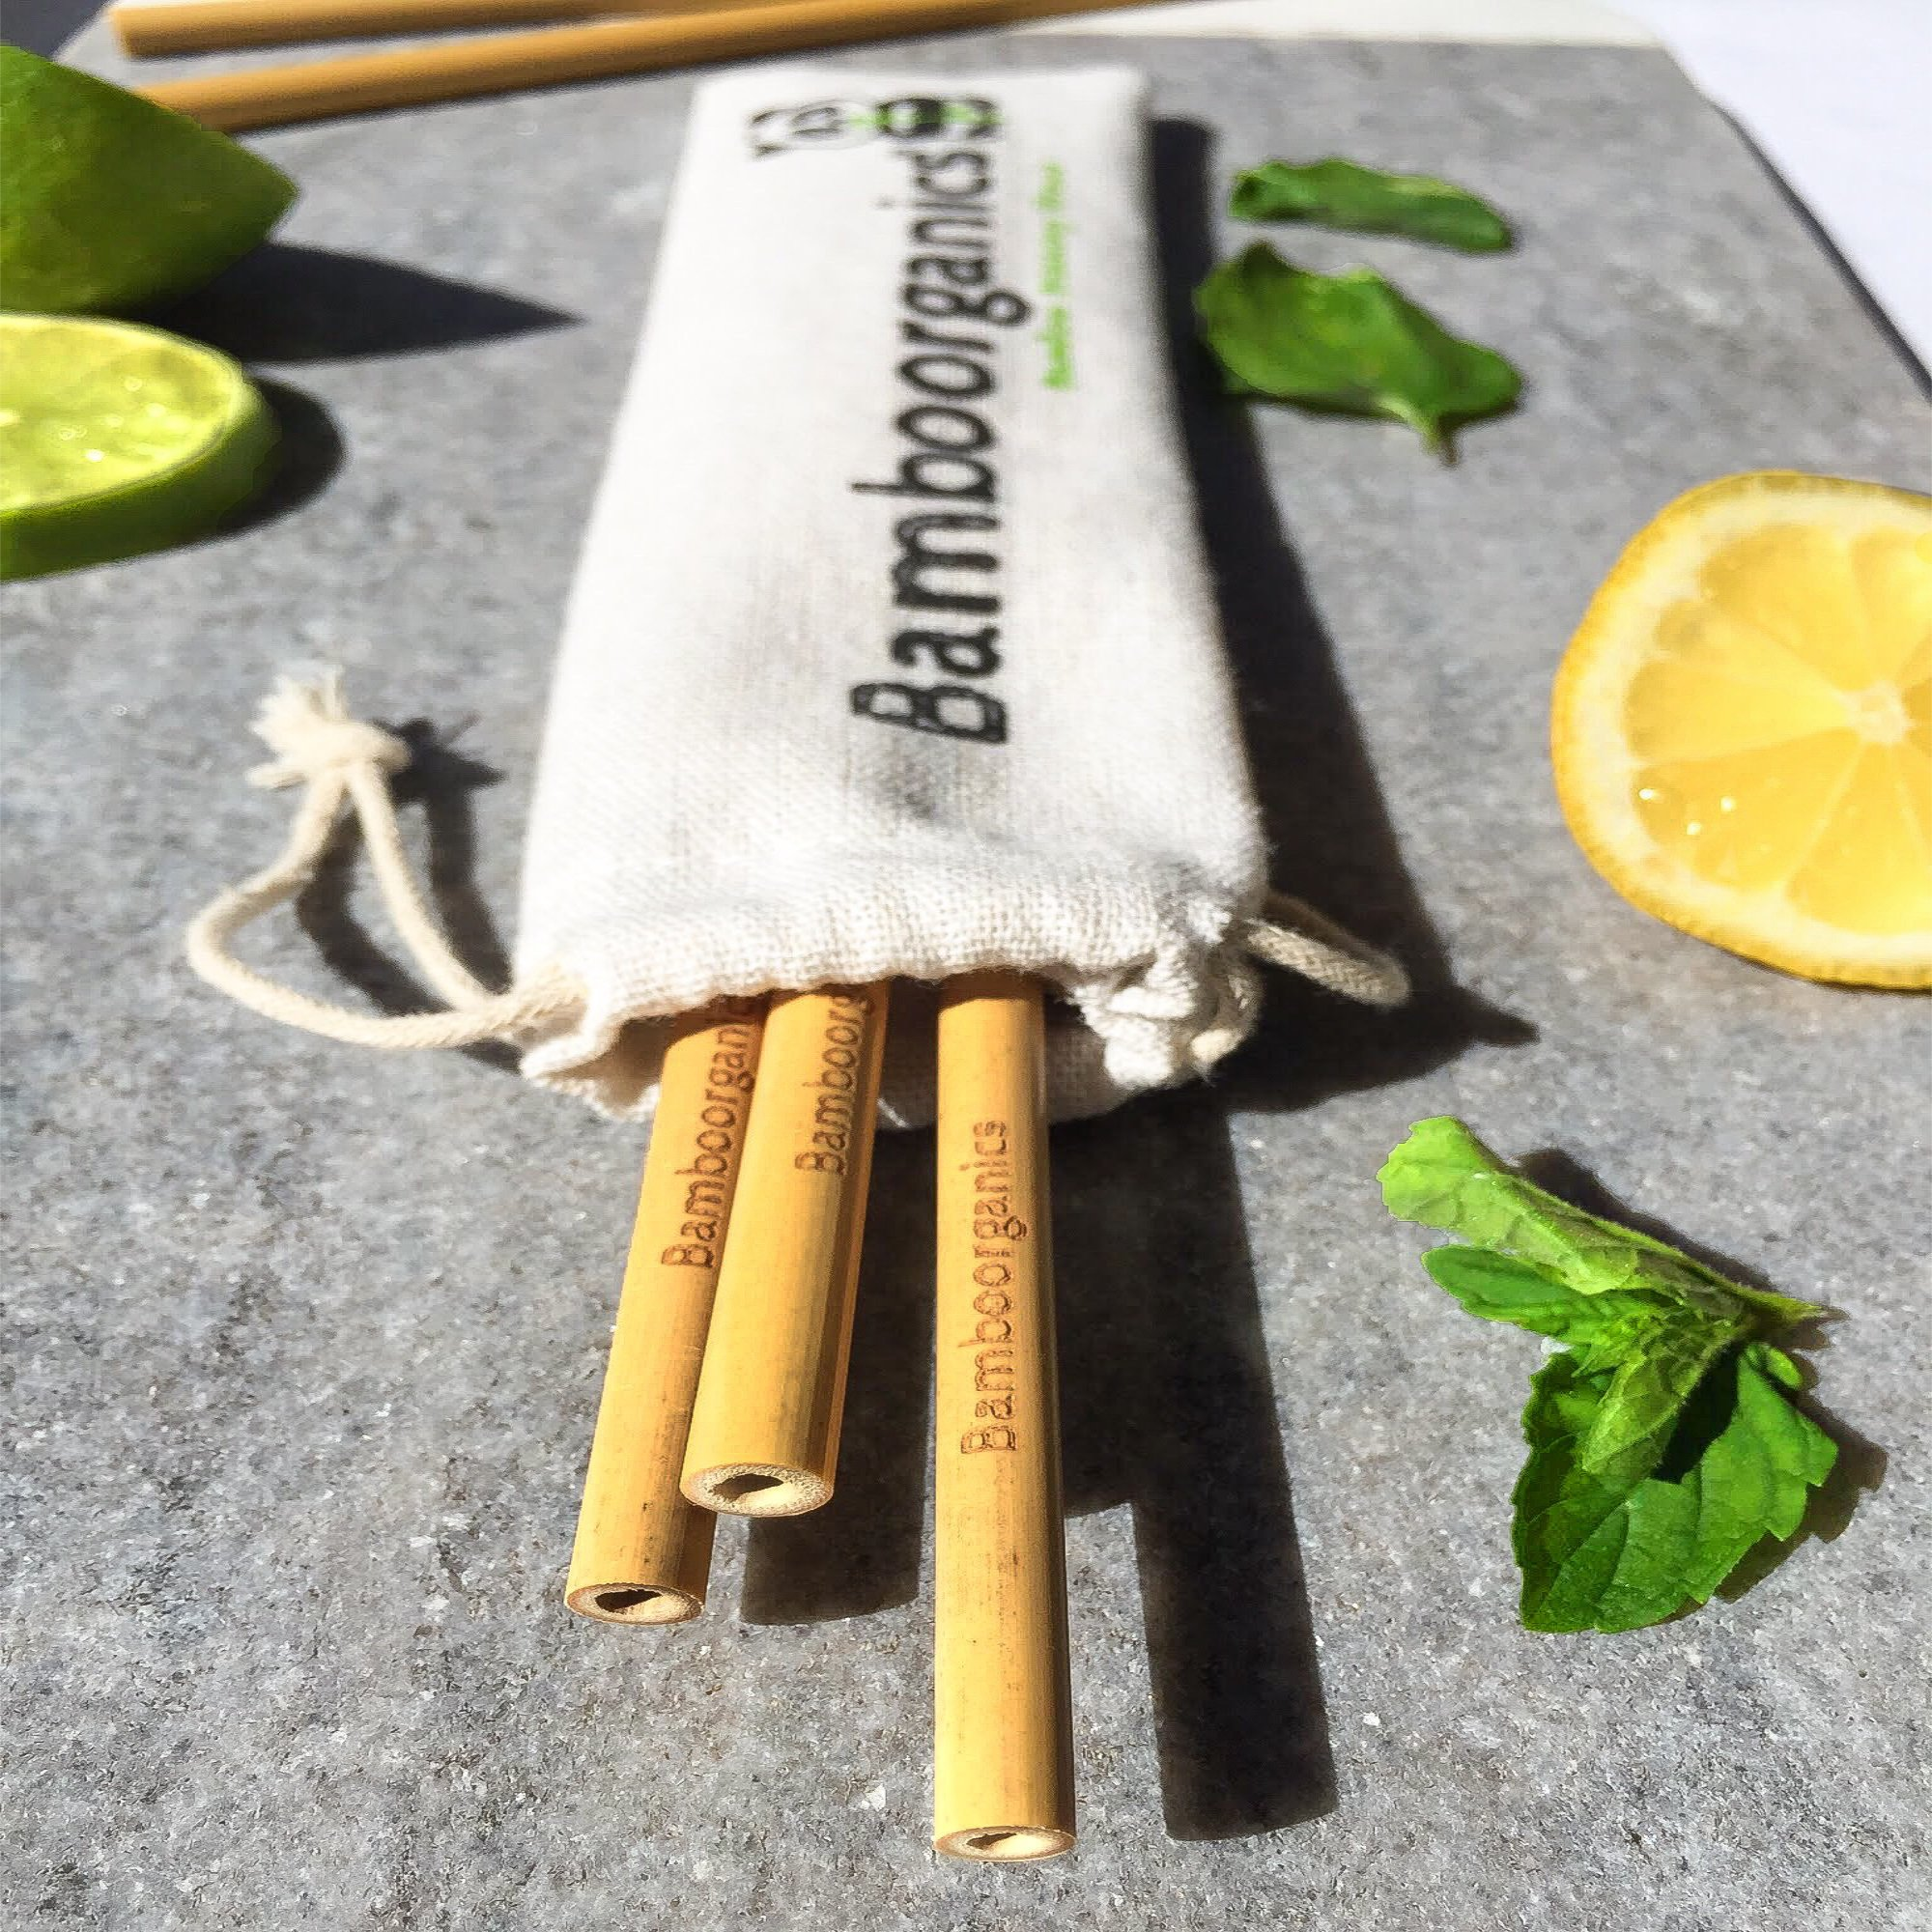 Zero Waste, Reusable, Premium Bamboo Drinking Straws & Natural Cotton Travel Bag | Large Mouth Straw Set of 10 with 2 Cleaning Brushes | Eco-Friendly, Biodegradable | 8in Long by Bamboorganics (Image #6)